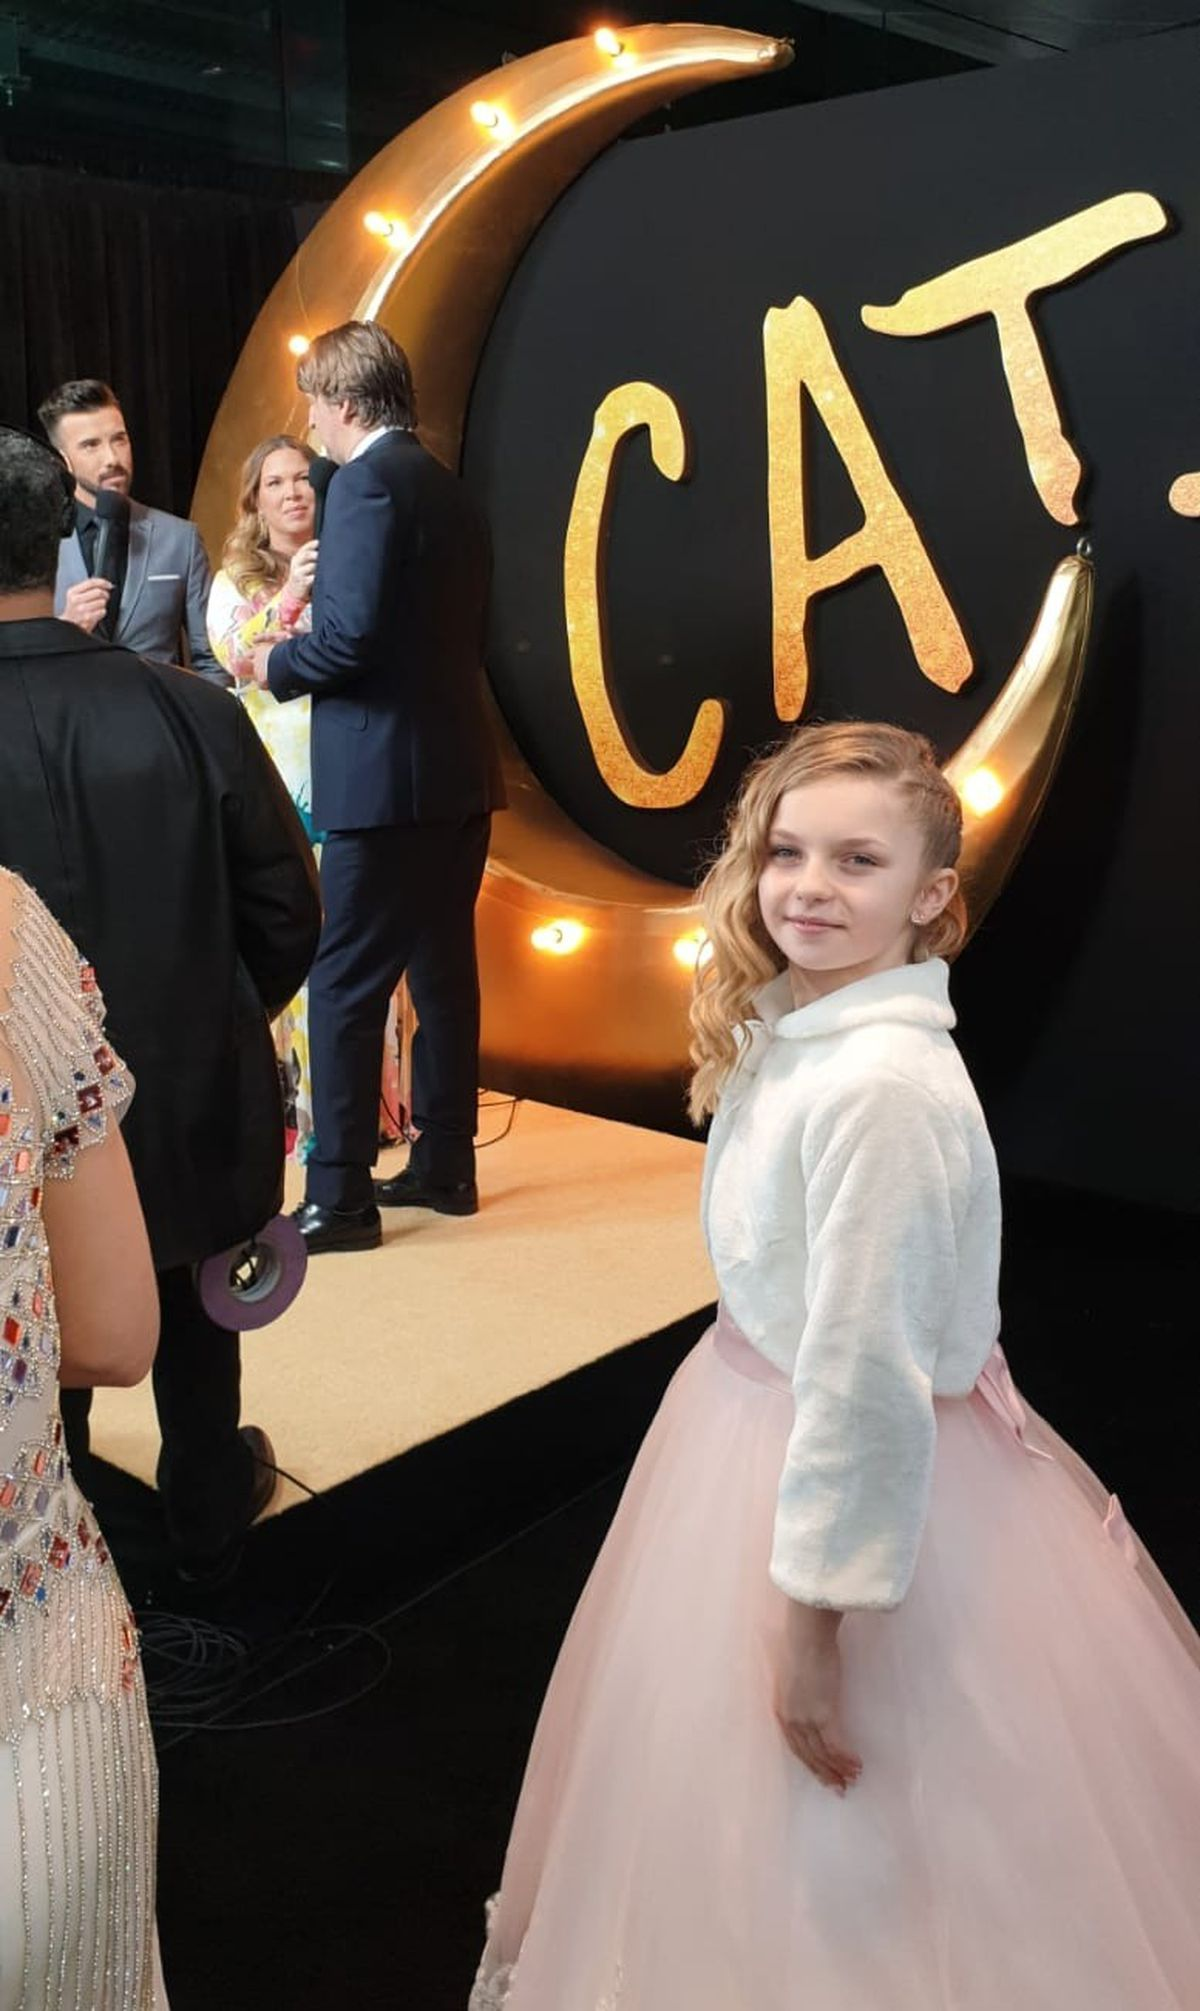 Meesha at the Cats premiere in New York